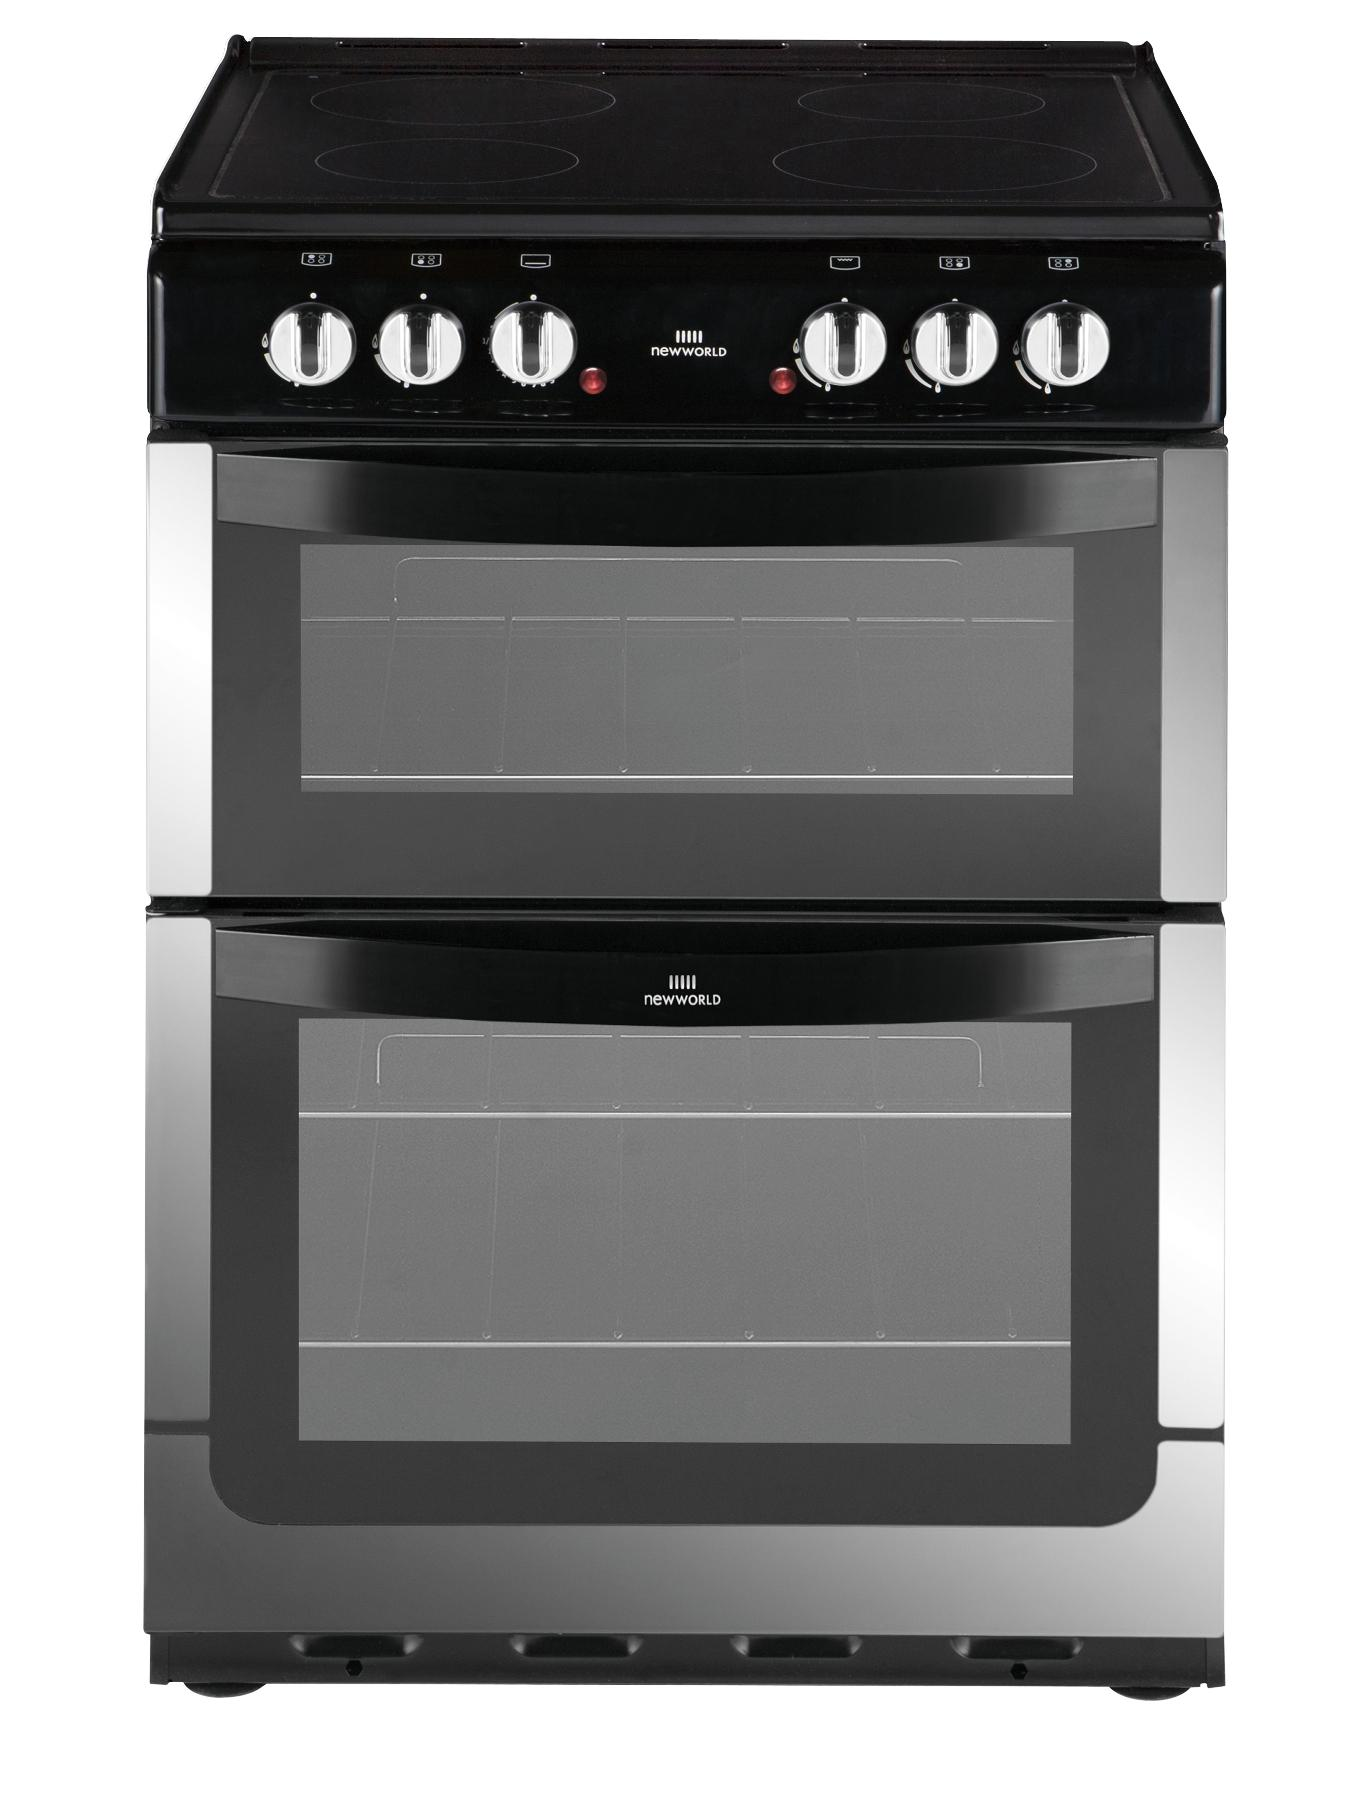 NW601EDO 60cm Double Oven Electric Cooker - Stainless Steel